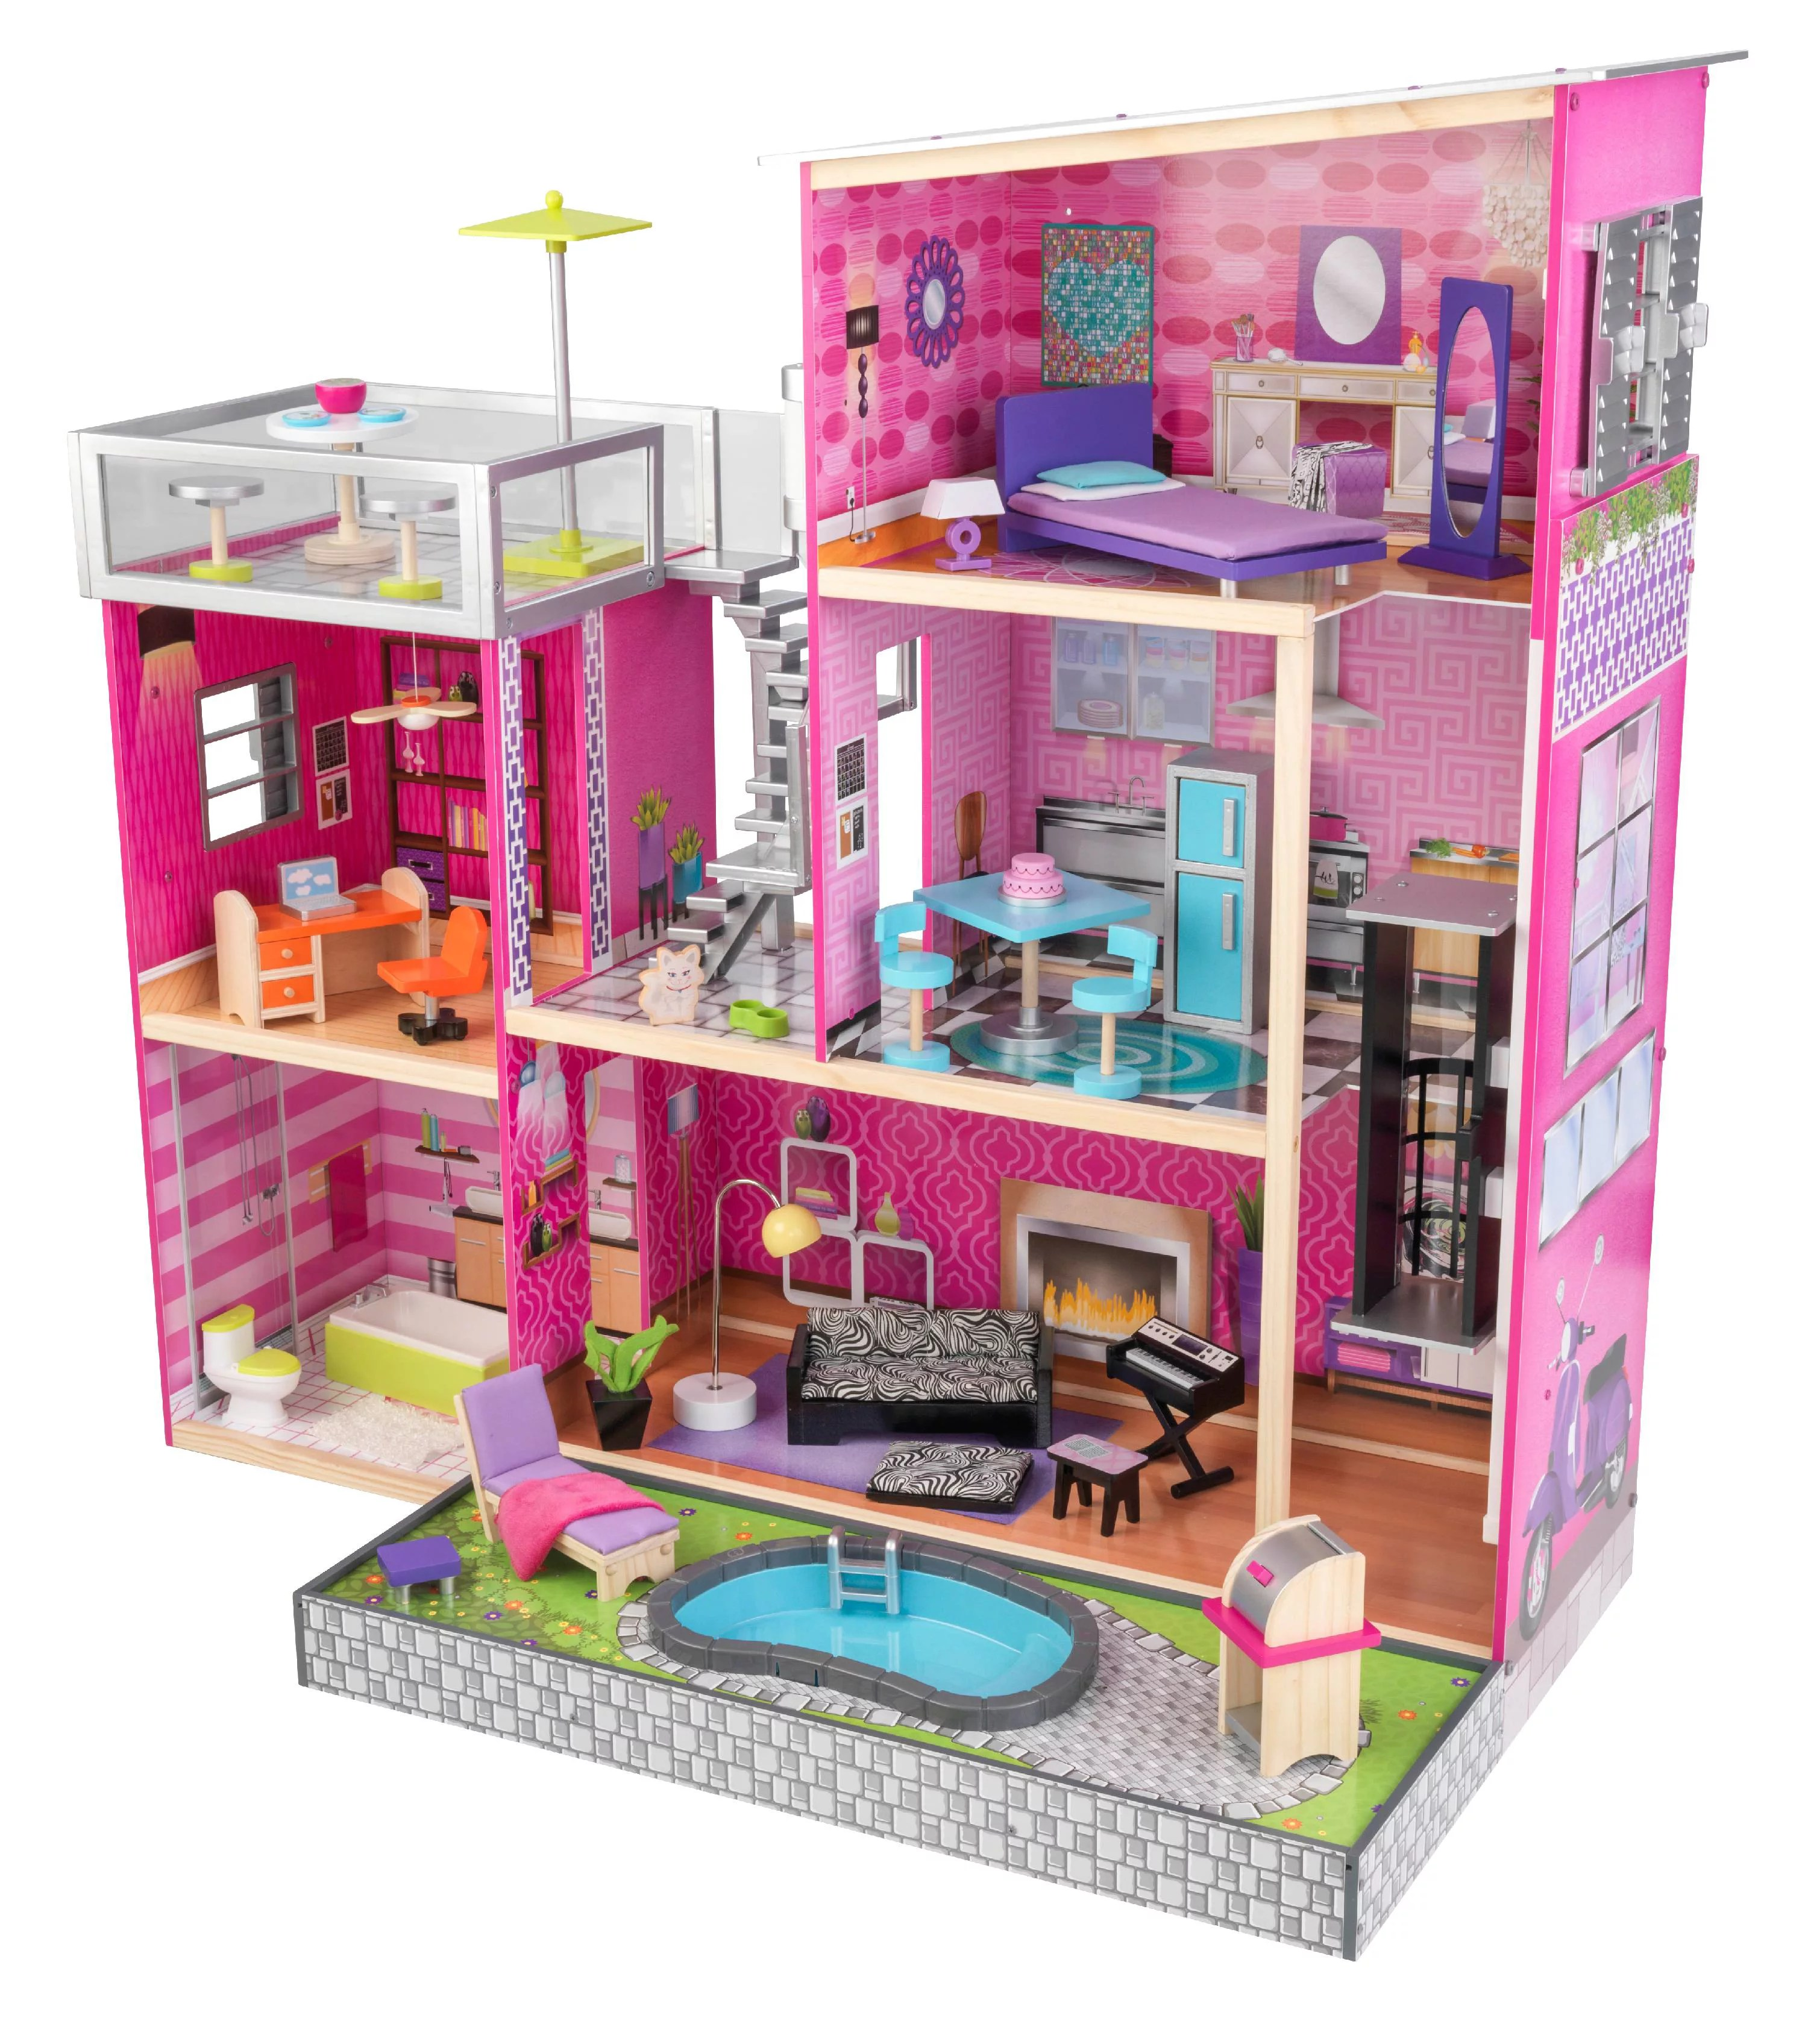 Average Cost Of Furniture For A House Kidkraft Uptown Wooden Dollhouse With 35 Pieces Of